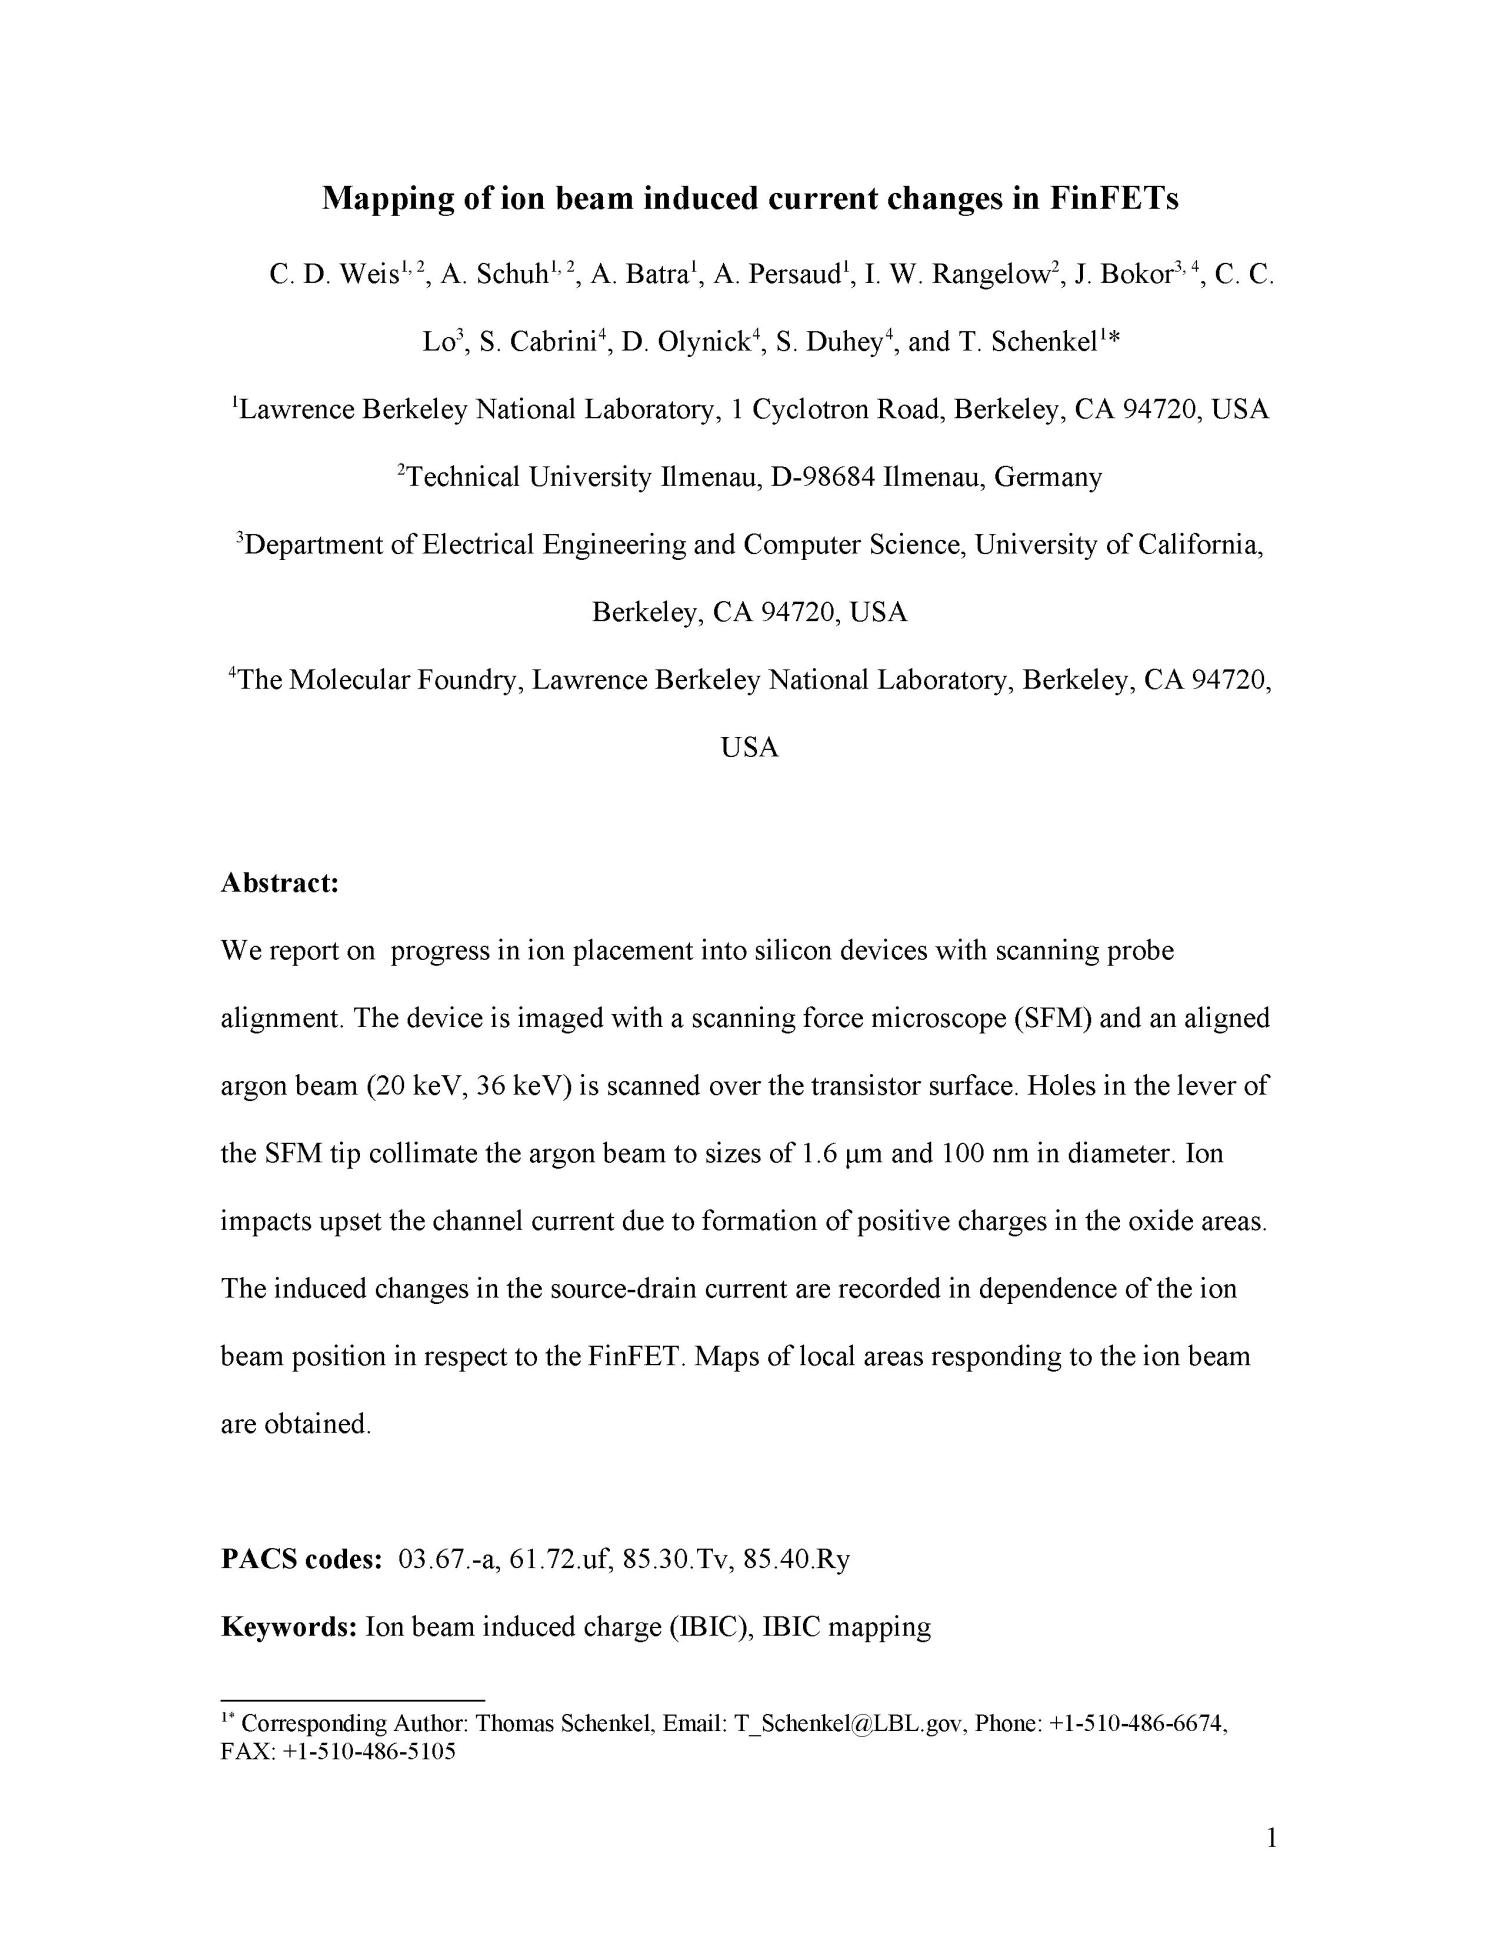 Mapping of ion beam induced current changes in FinFETs - Digital Library